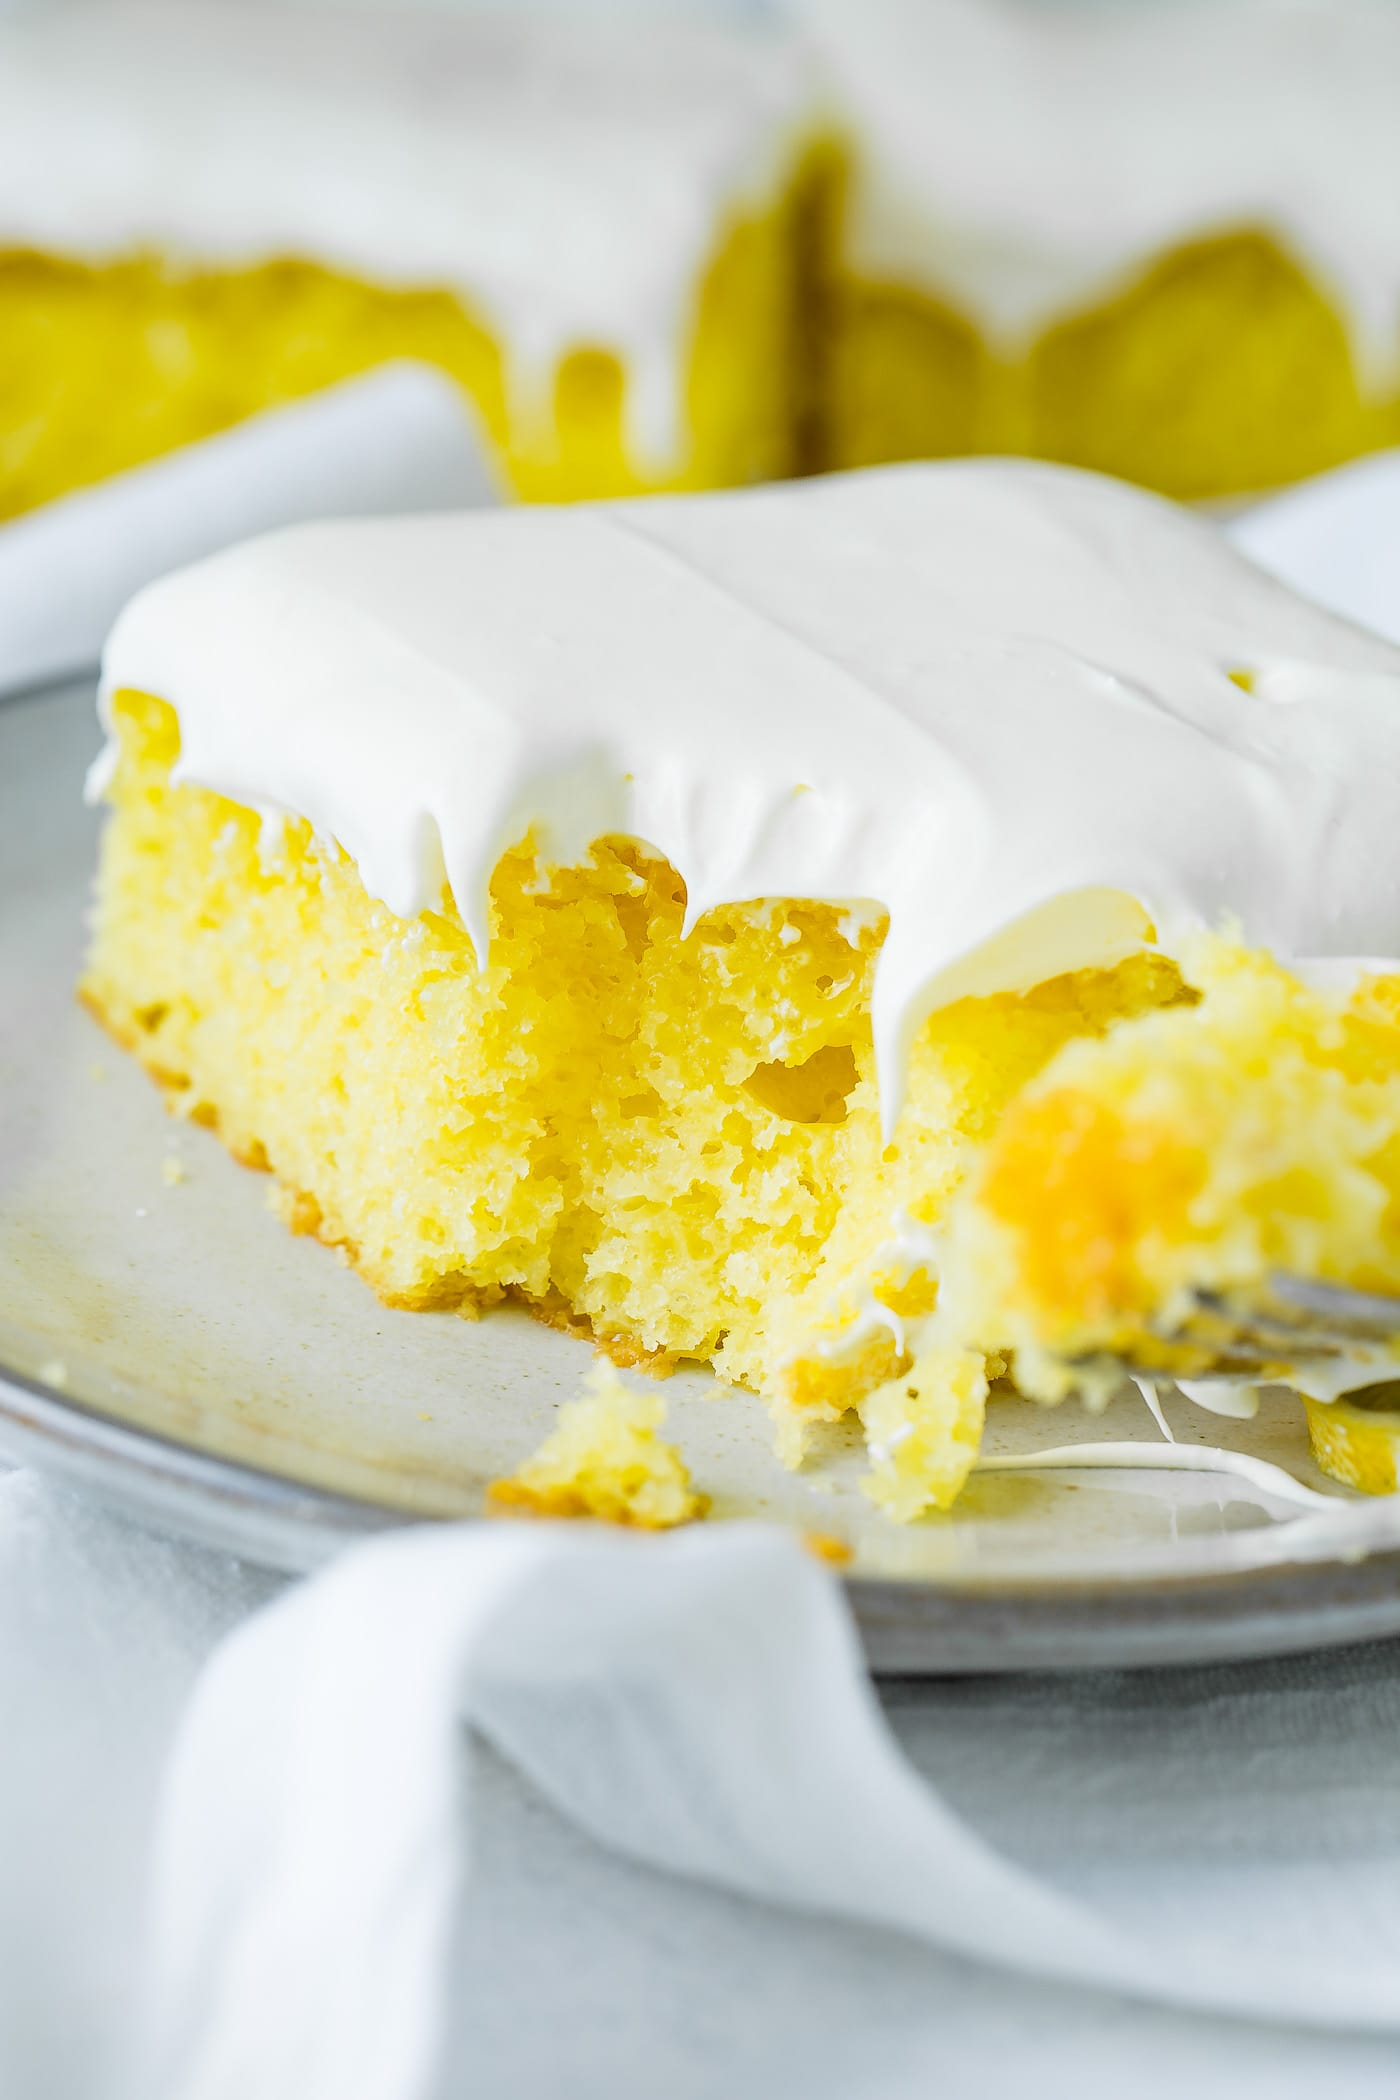 A slice of yellow lemon jello cake with a bite taken from the corner. It is topped with a fluffy white frosting and rests on a serving plate on top of a white linen napkin.